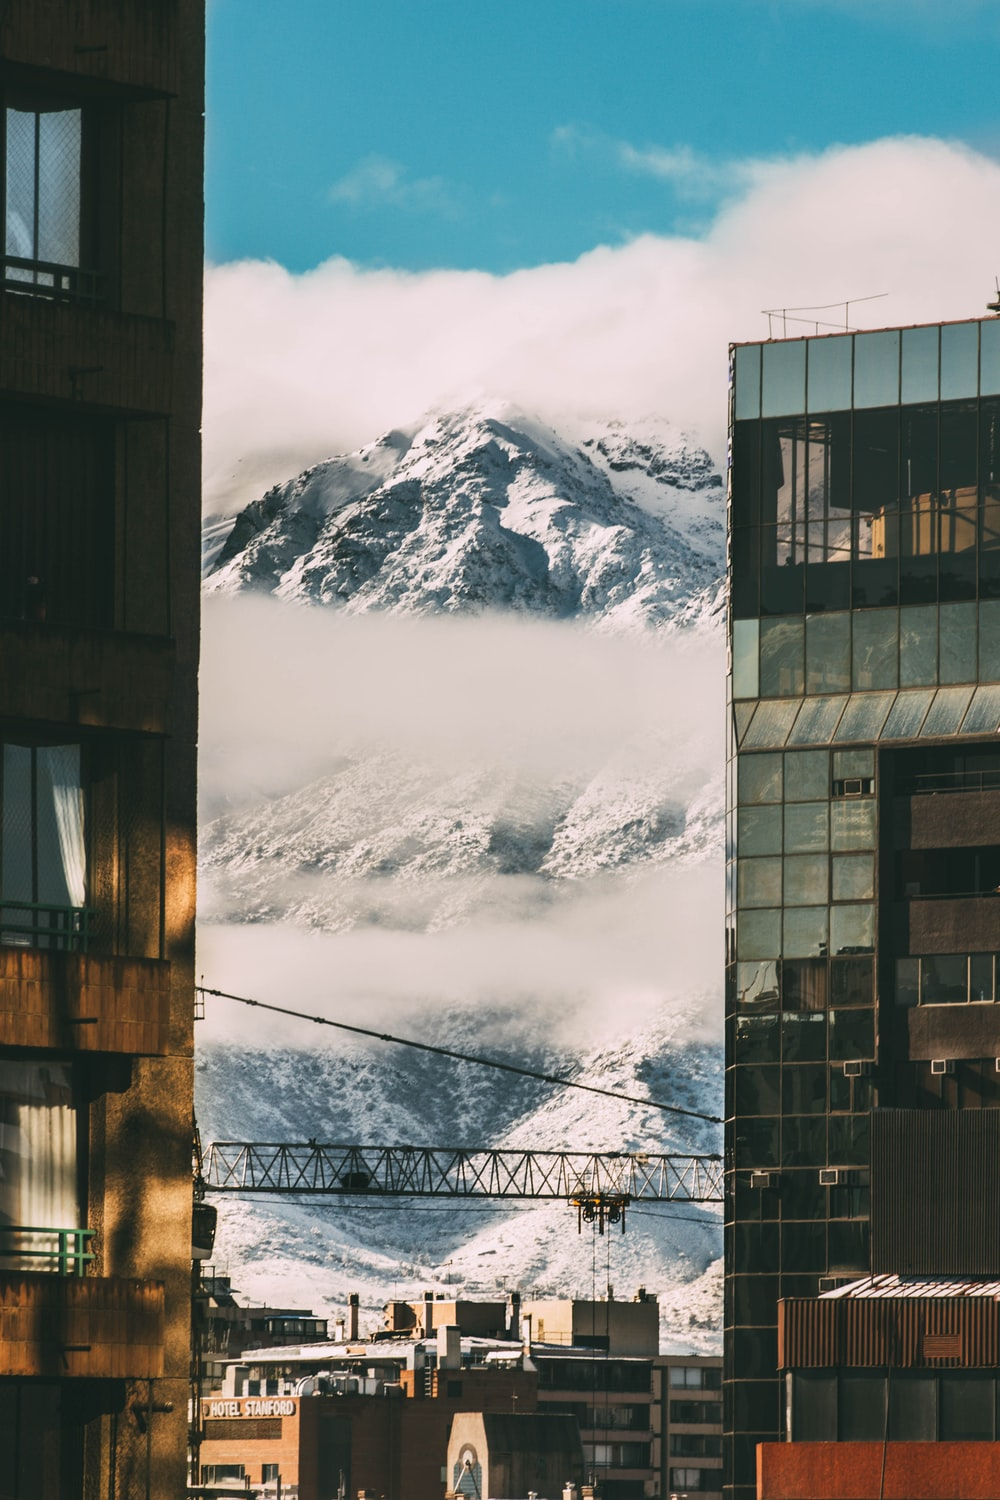 photo of mountain near buildings